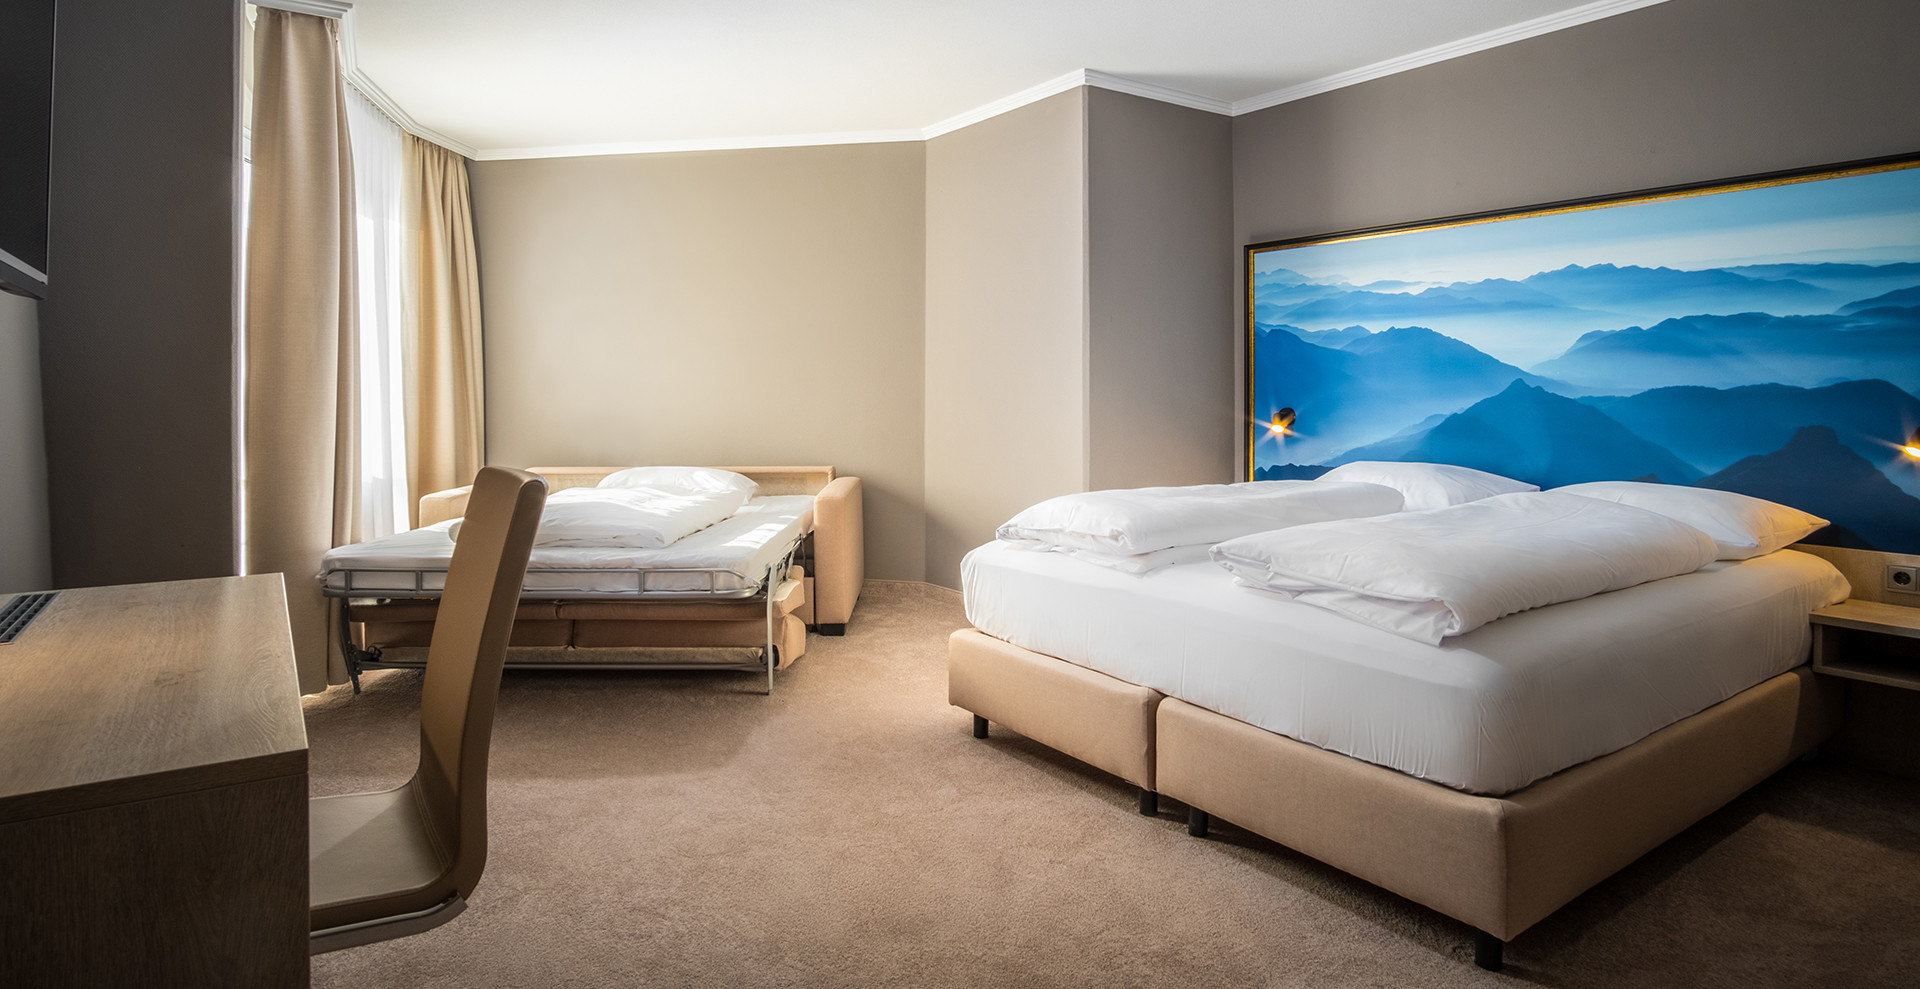 AWA Hotel - Suite for up to 4 people